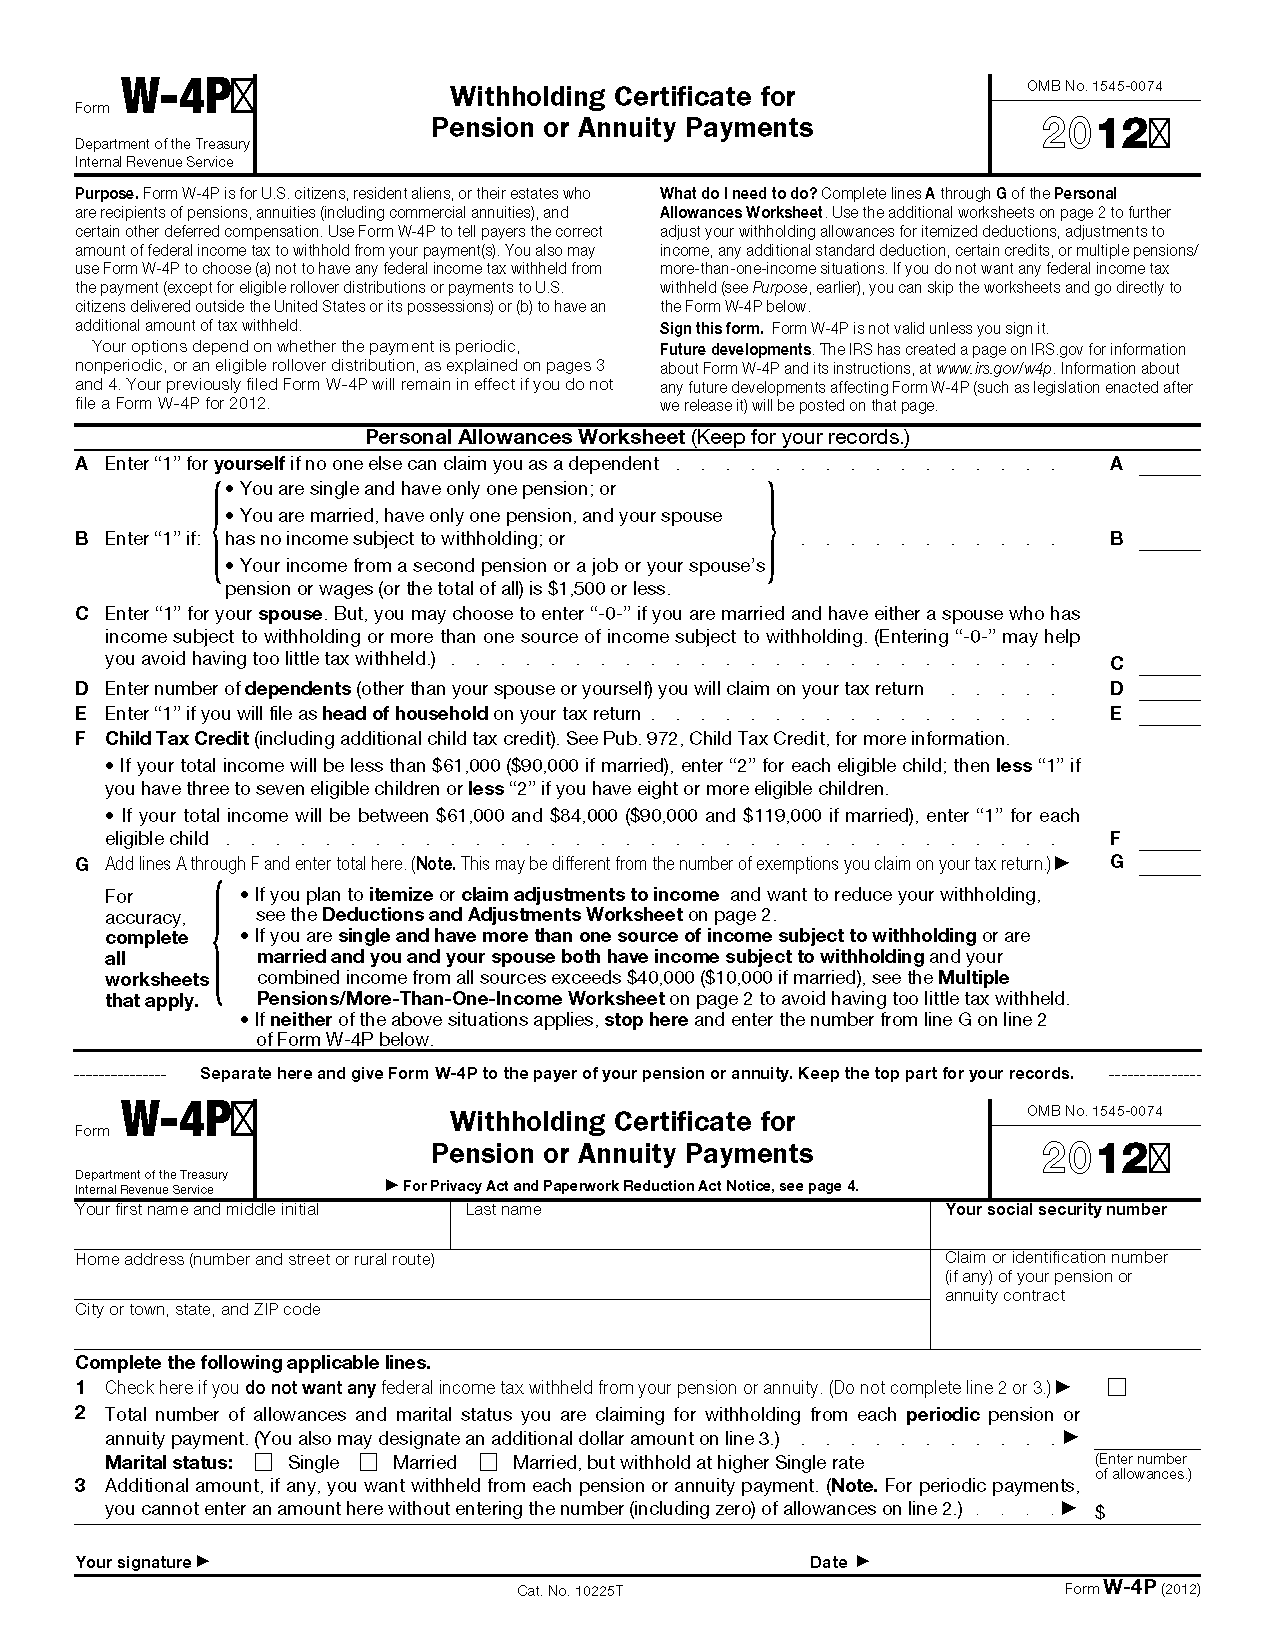 Free Worksheet Irs Personal Allowance Worksheet form w 4p withholding certificate for pension or annuity payments view all 2011 irs tax forms